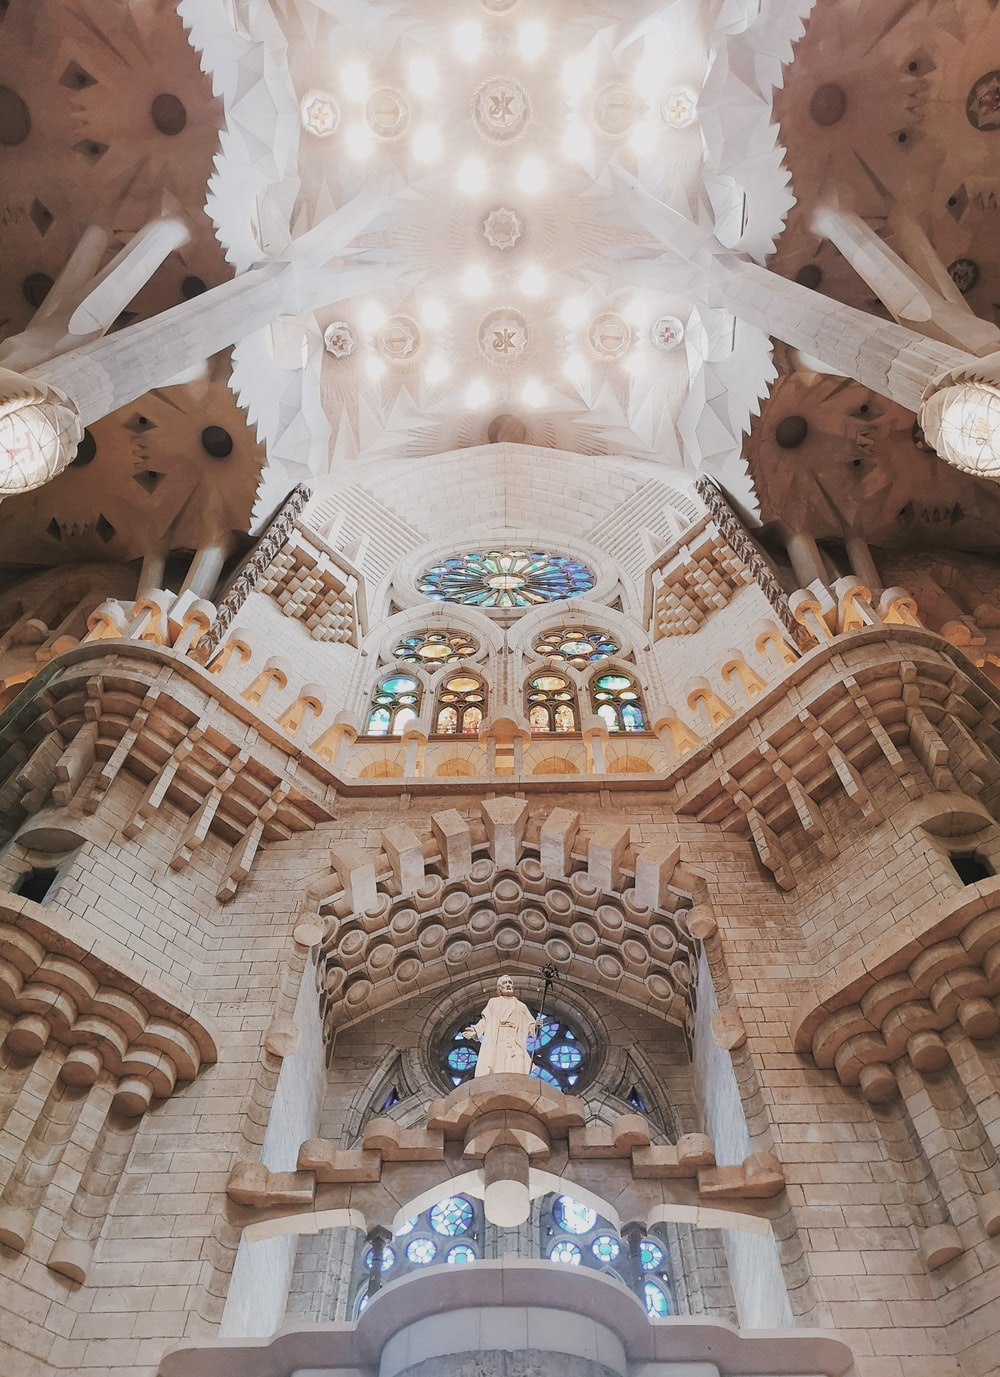 low angle view of gothic architecture inside church